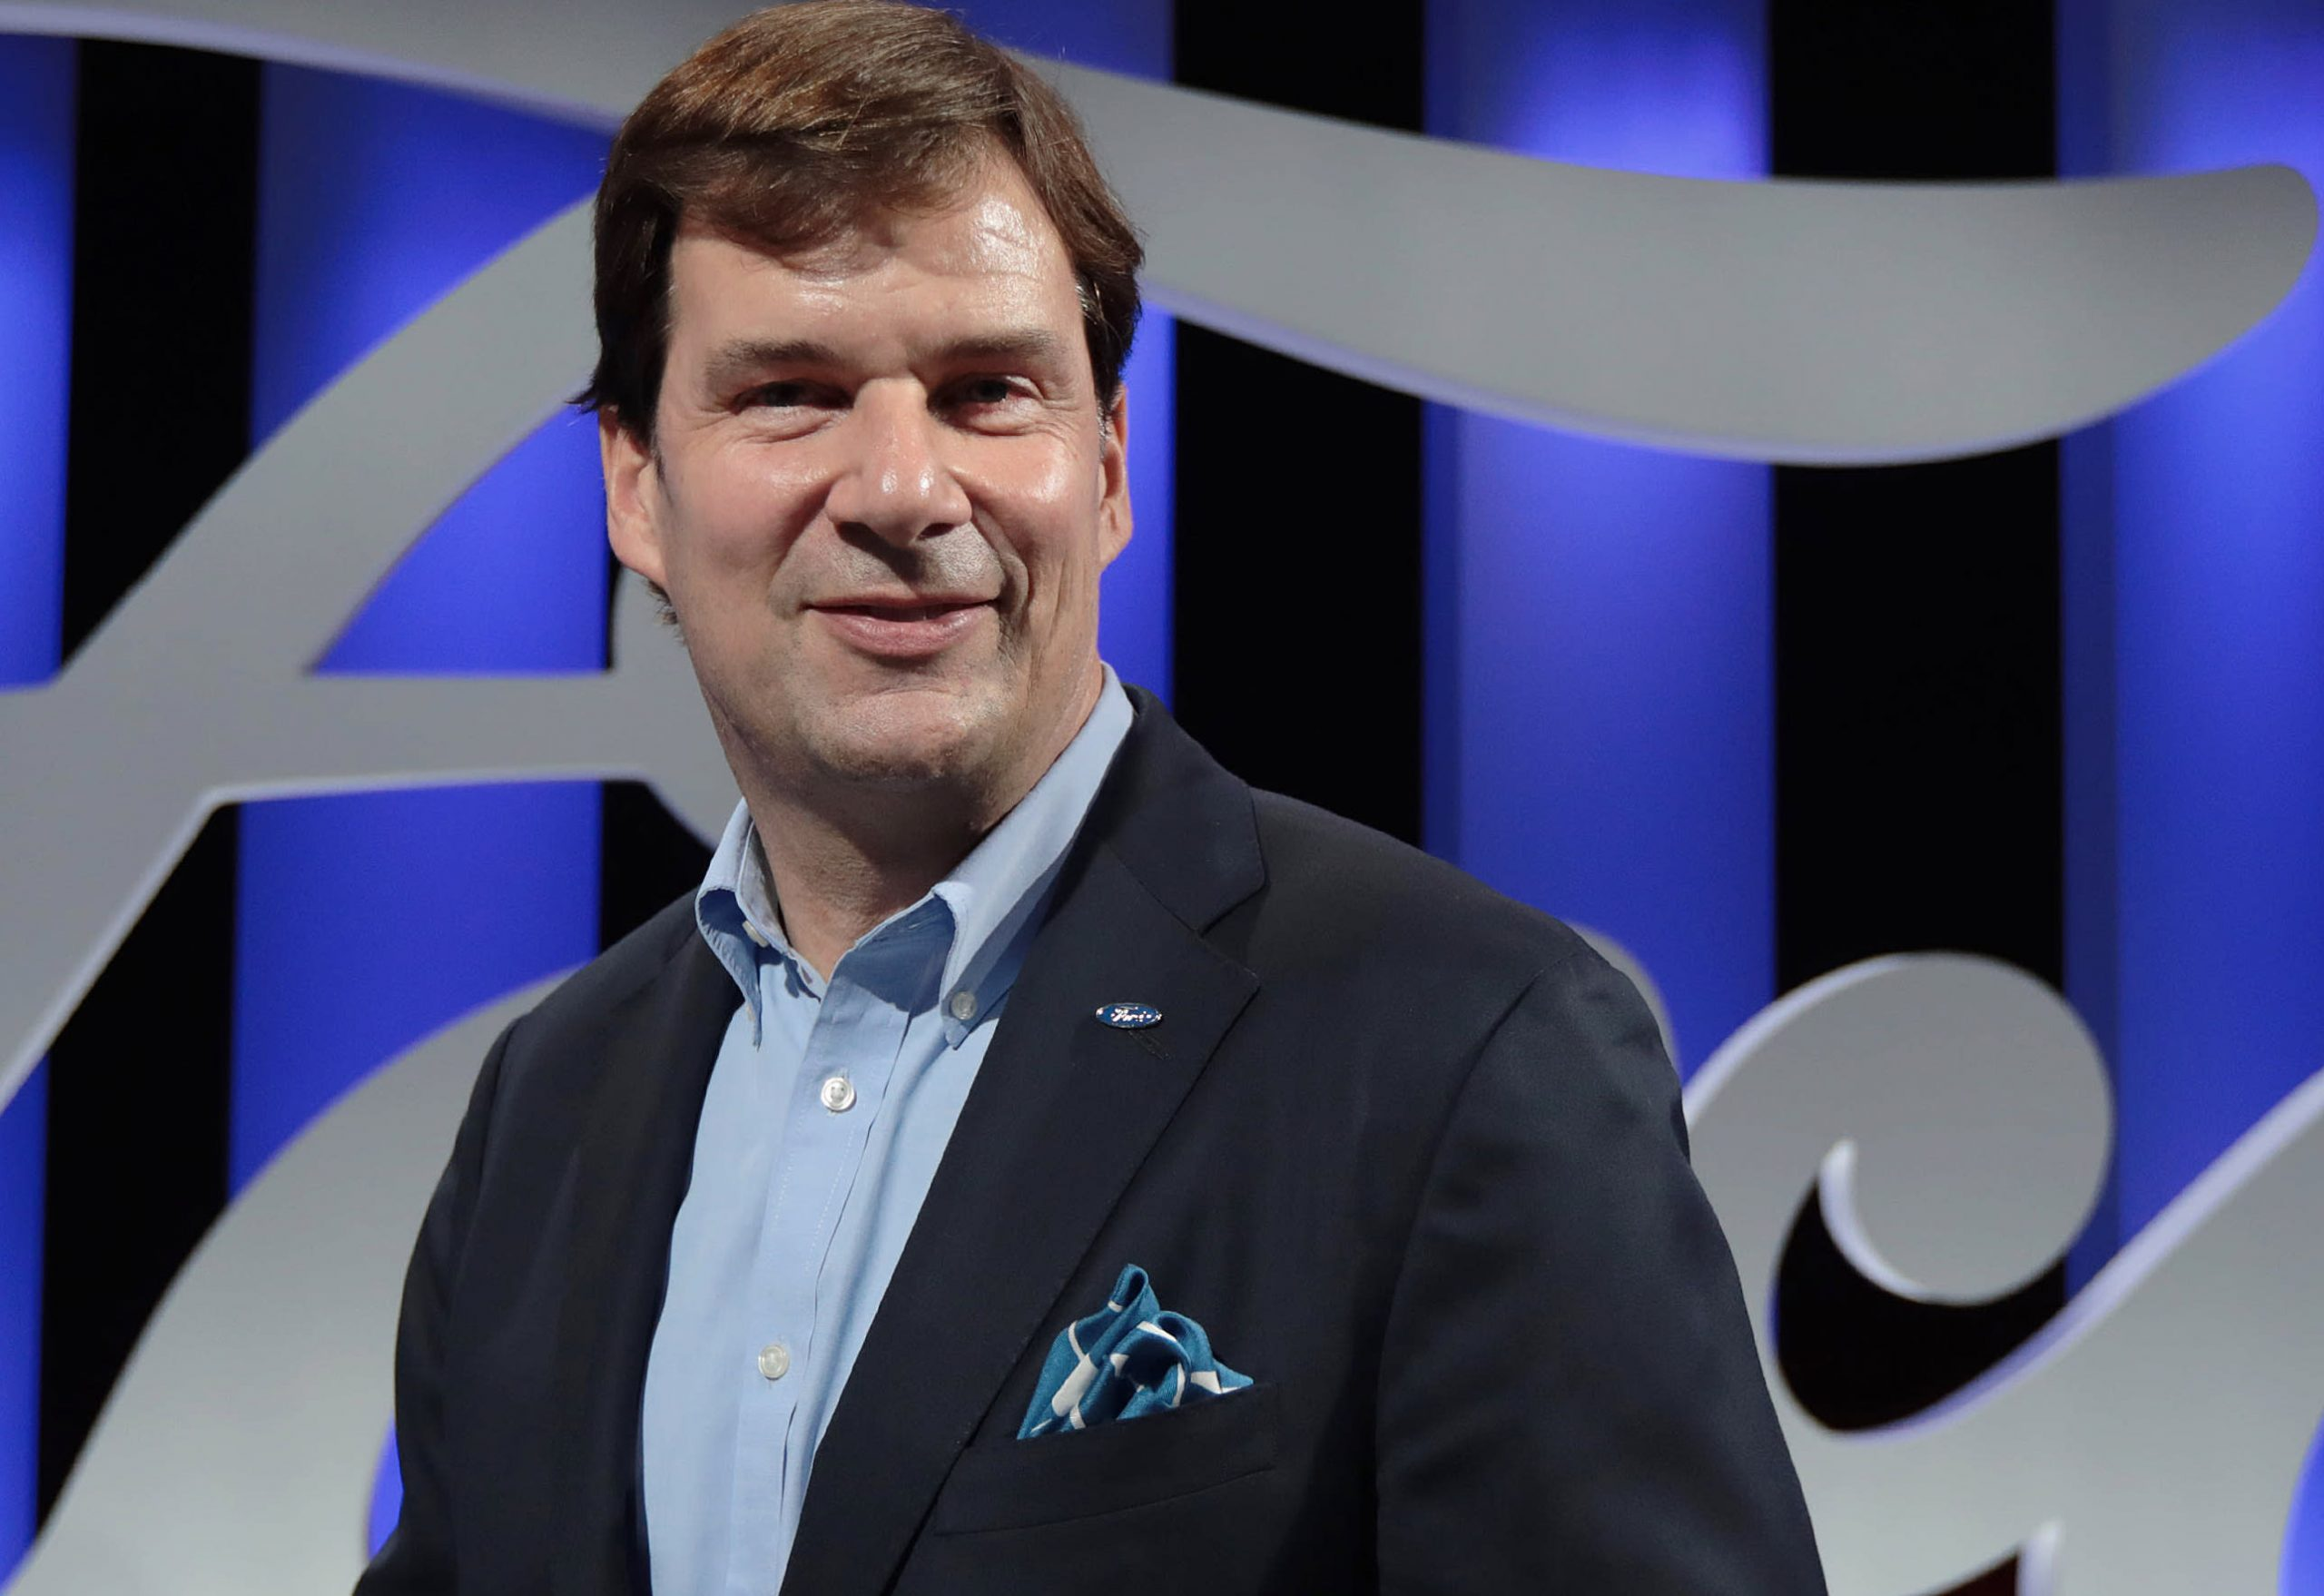 Ford To Be Lead by Jim Farley as New CEO from October 1st